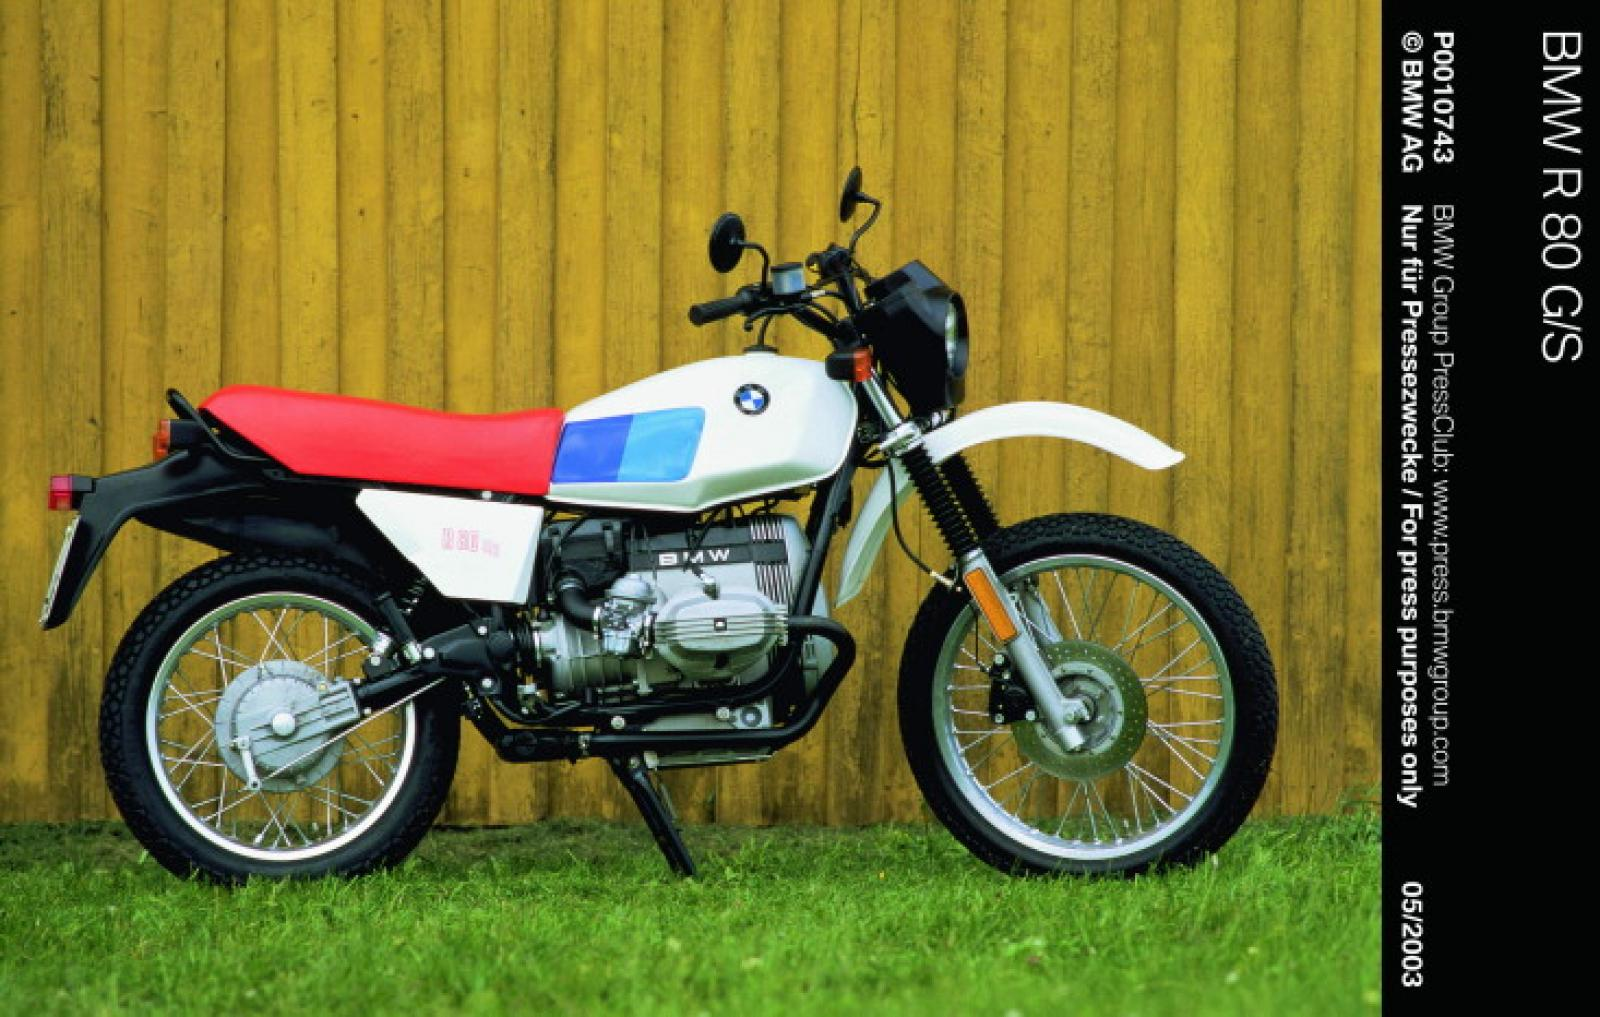 BMW R65 (reduced effect) 1991 images #77439